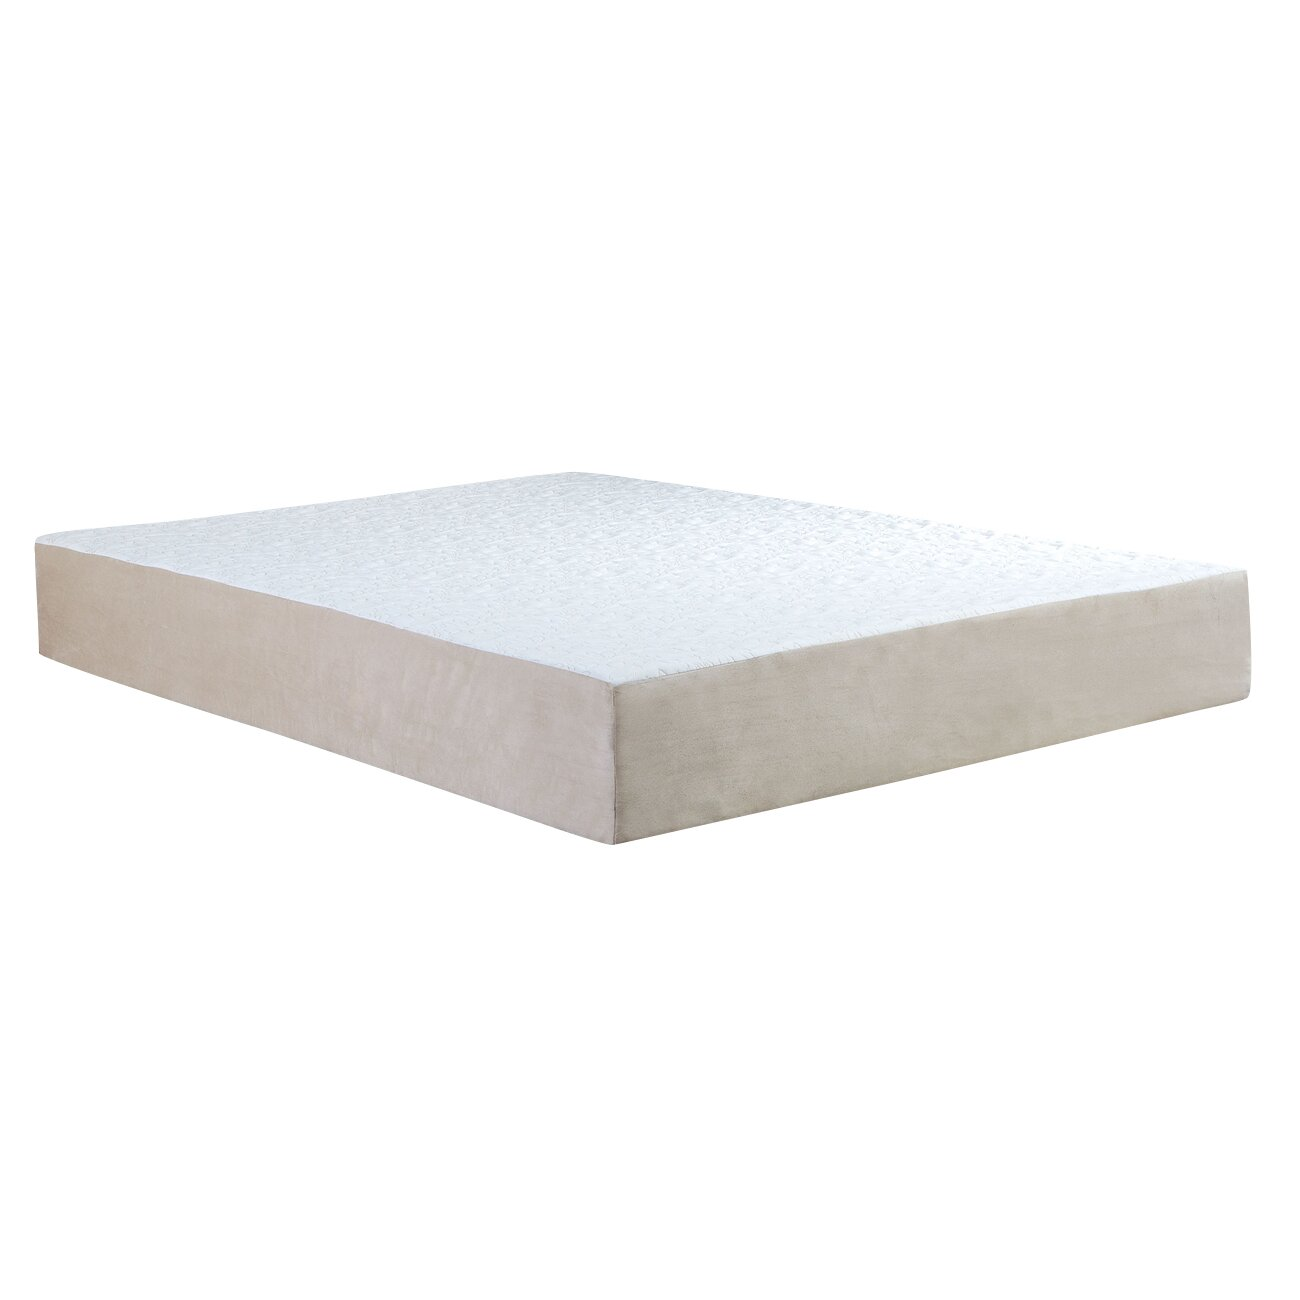 Classic brands 10 memory foam mattress reviews Memory foam mattress king size sale